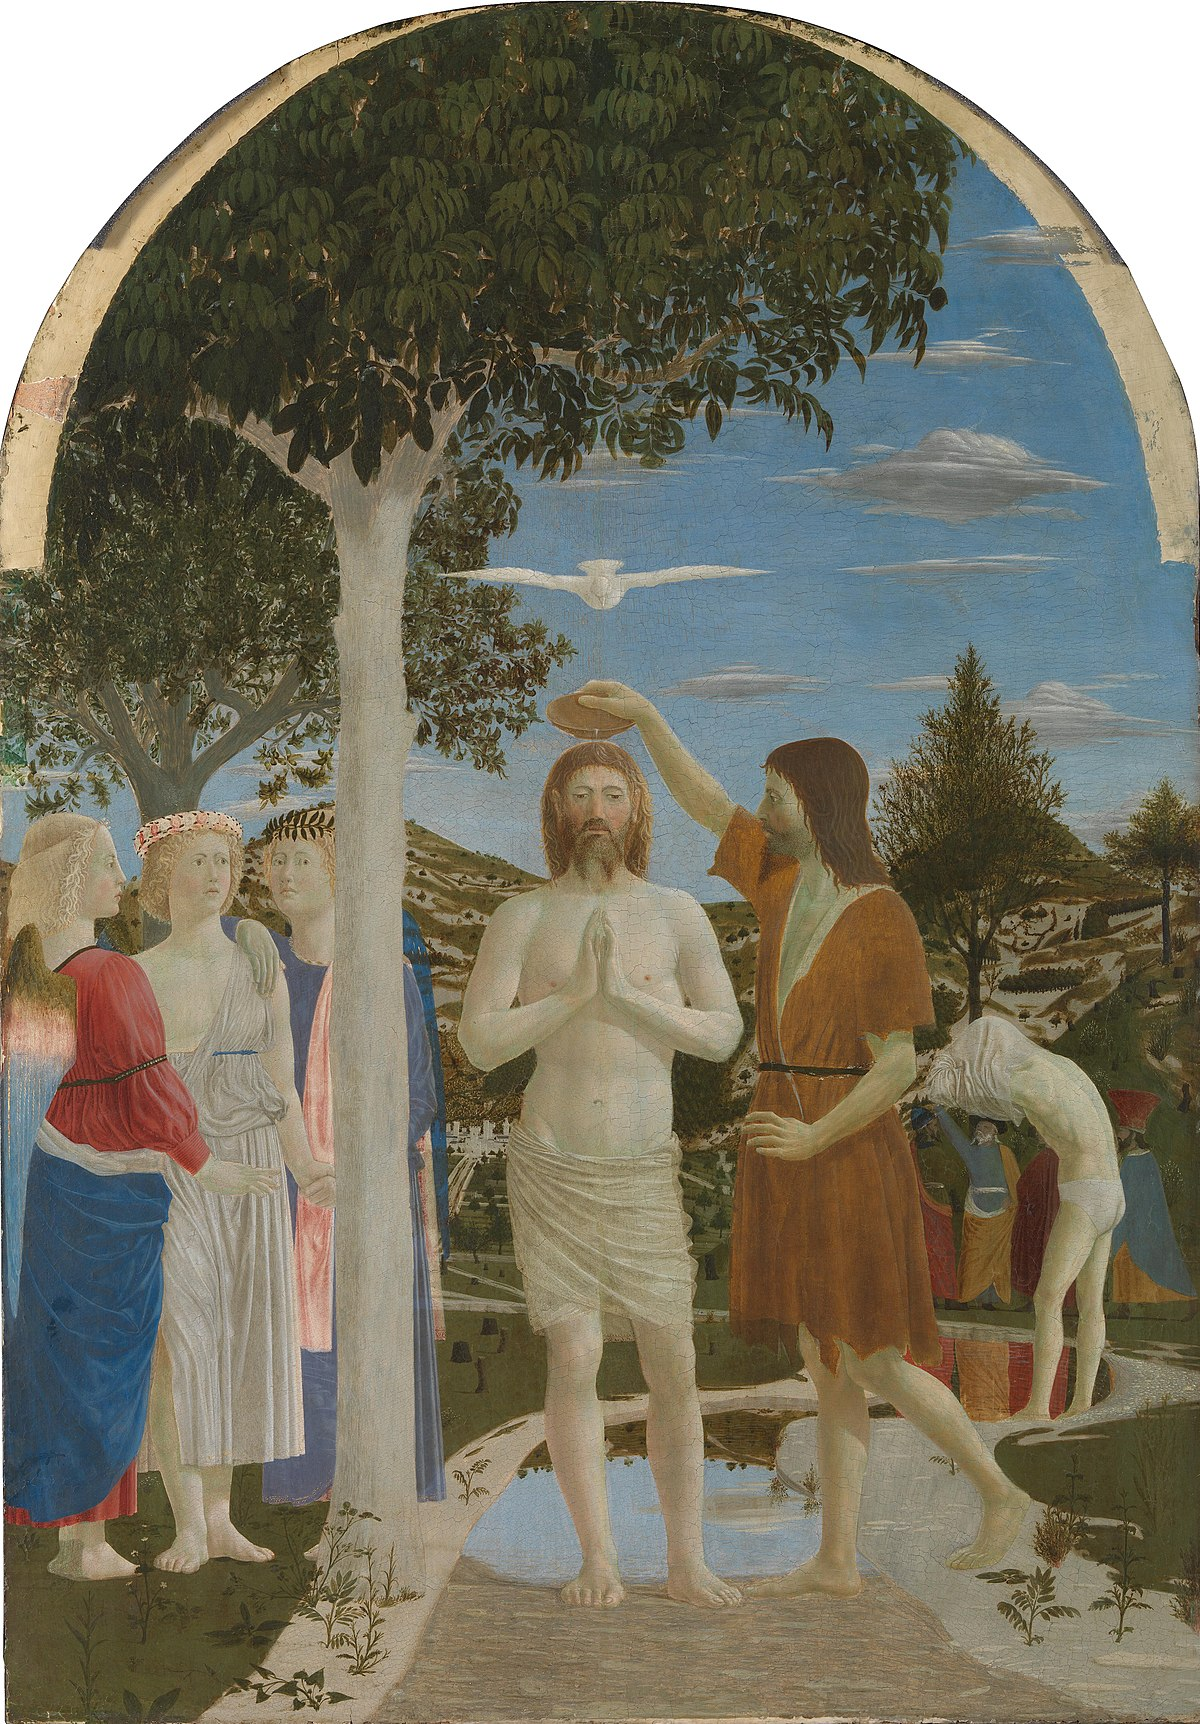 The Baptism of Christ, Piero della Francesca 1450